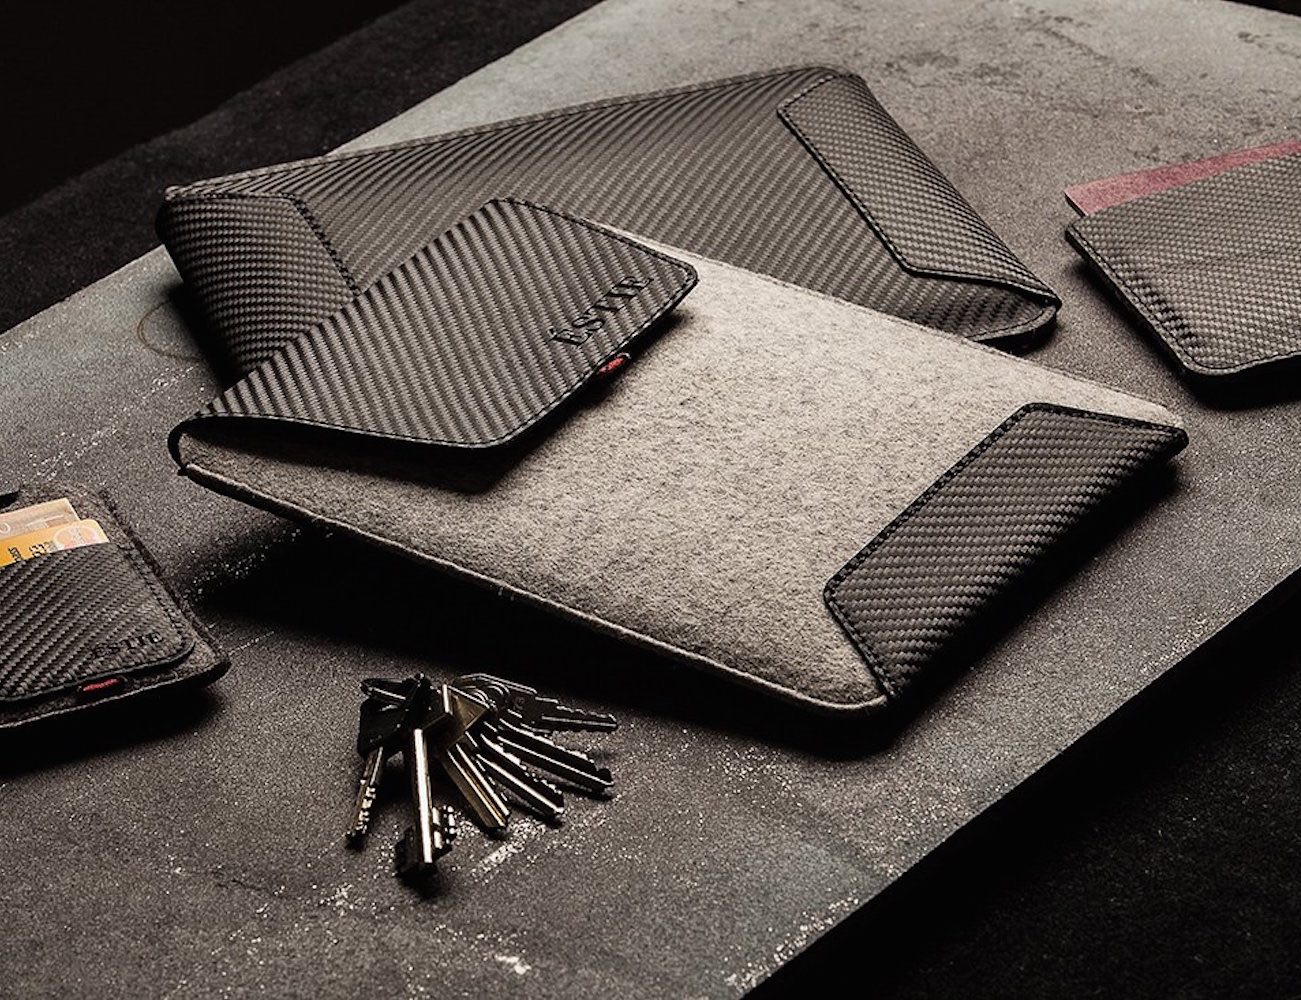 IPad+Air%2FMini+Sleeve+By+%C3%89STIE+%26%238211%3B+100%25+Handmade+With+Carbon+Leather+Weave